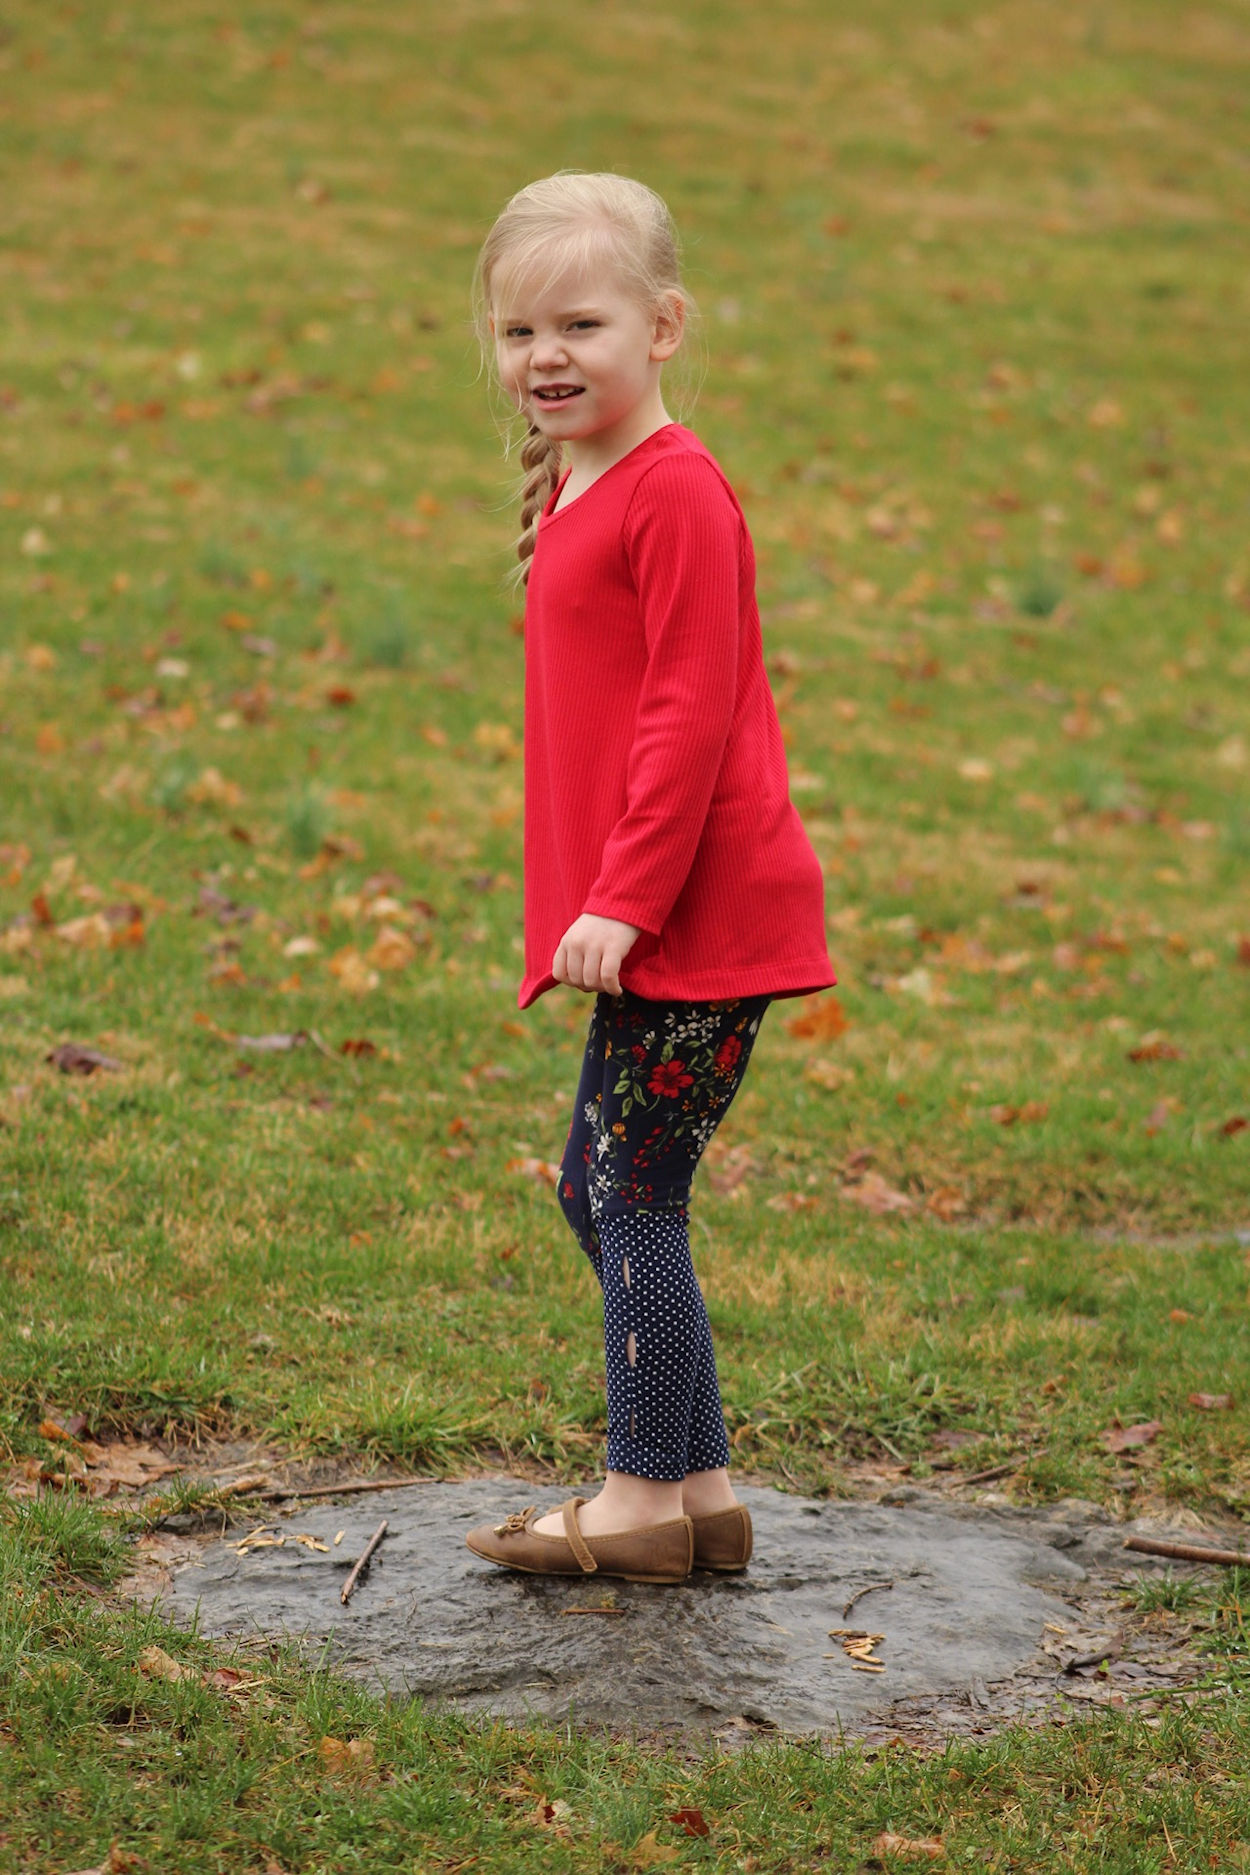 Rocky Shore tights for gymnastics or play. Lower panel with slight angle and peek a boo holes for colour blocking.